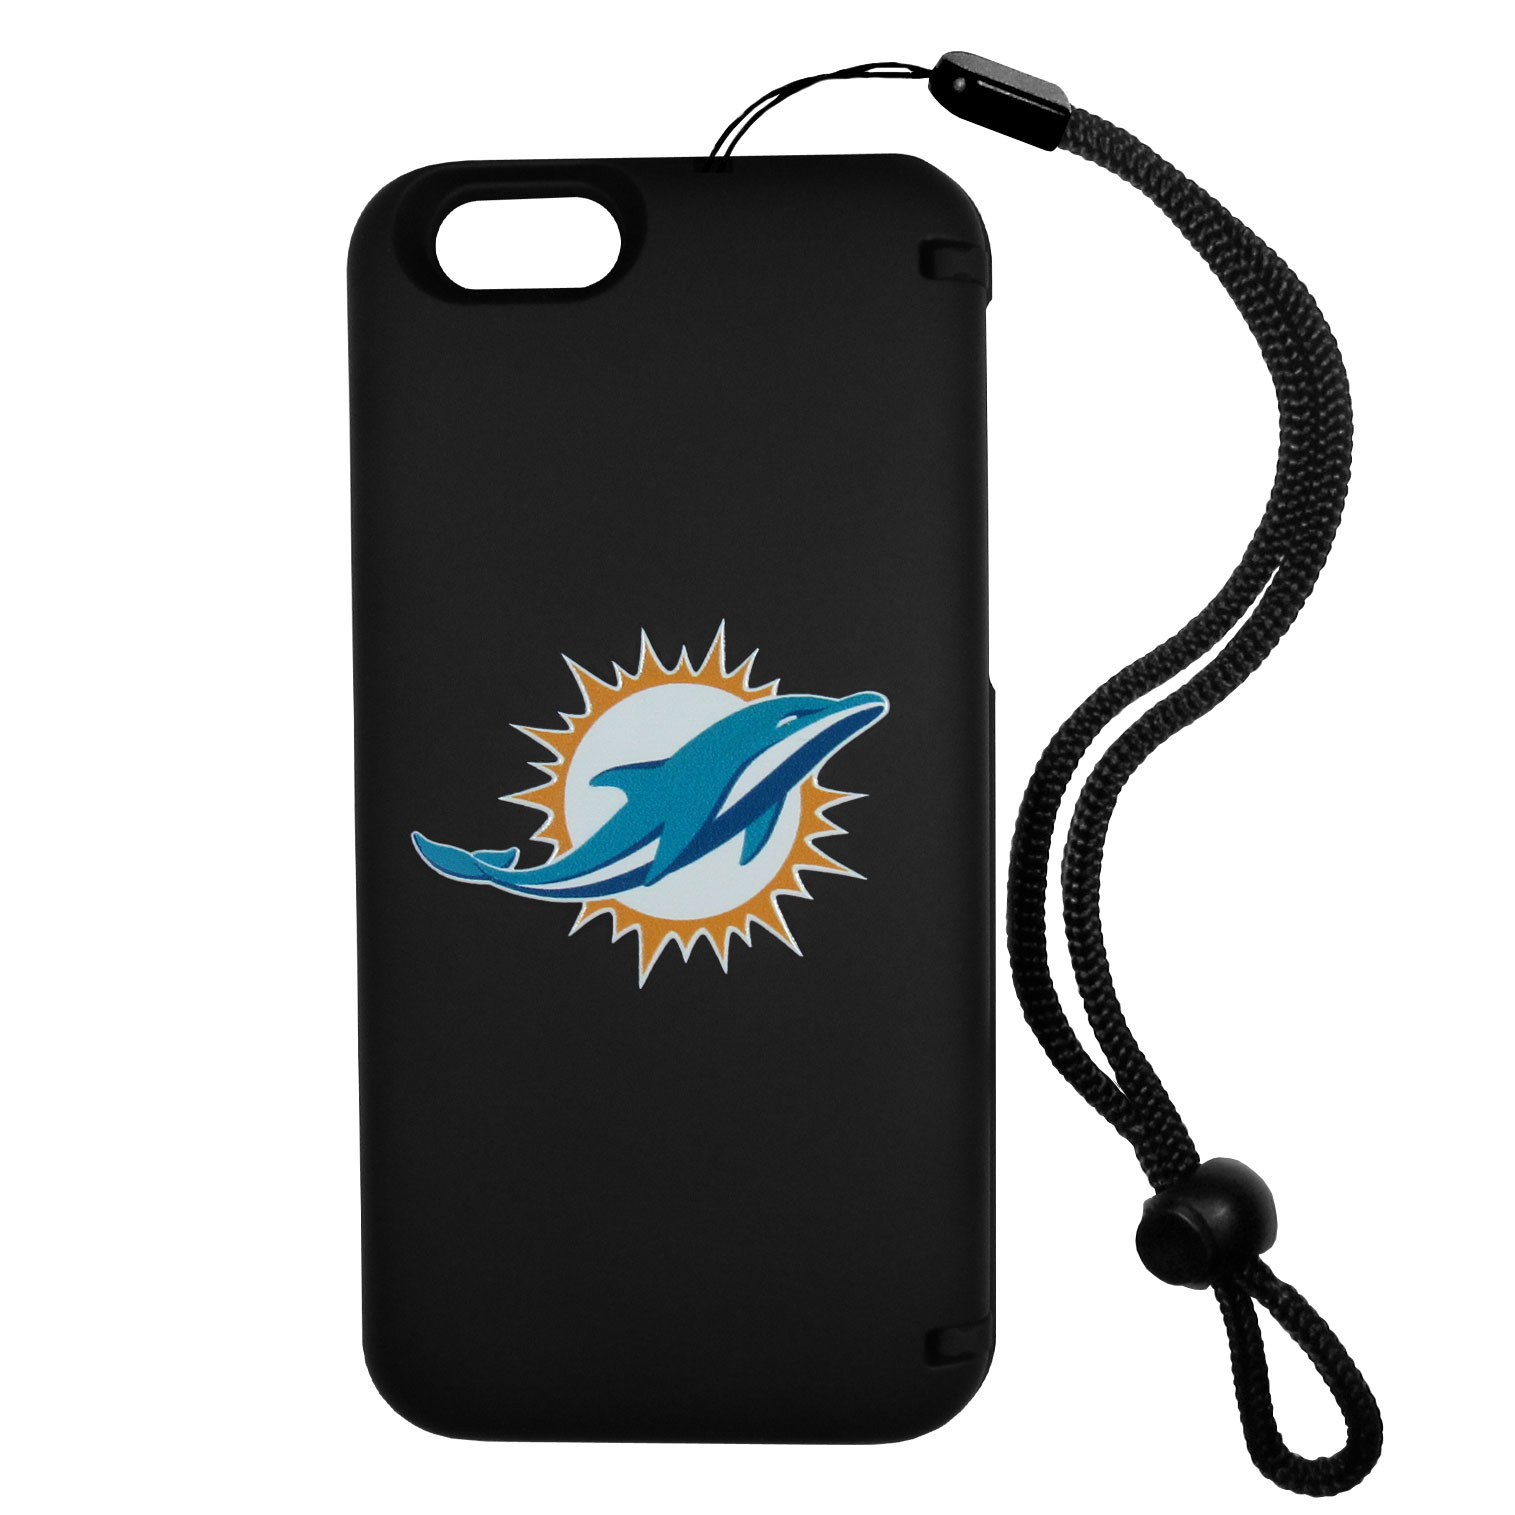 Miami Dolphins iPhone 6 Plus Everything Case - This case really does have everything but the kitchen sink! The hidden compartment lets you keep your cards, money and tickets to the big game safe and secure and has a compact mirror so you can make sure your game face is ready to go. It also comes with a kickstand to make chatting and watching videos a breeze. The wrist strap allows you to travel with ease with your everything case. If that's not enough, it also comes with the Miami Dolphins logo printed in expert detail on the front.